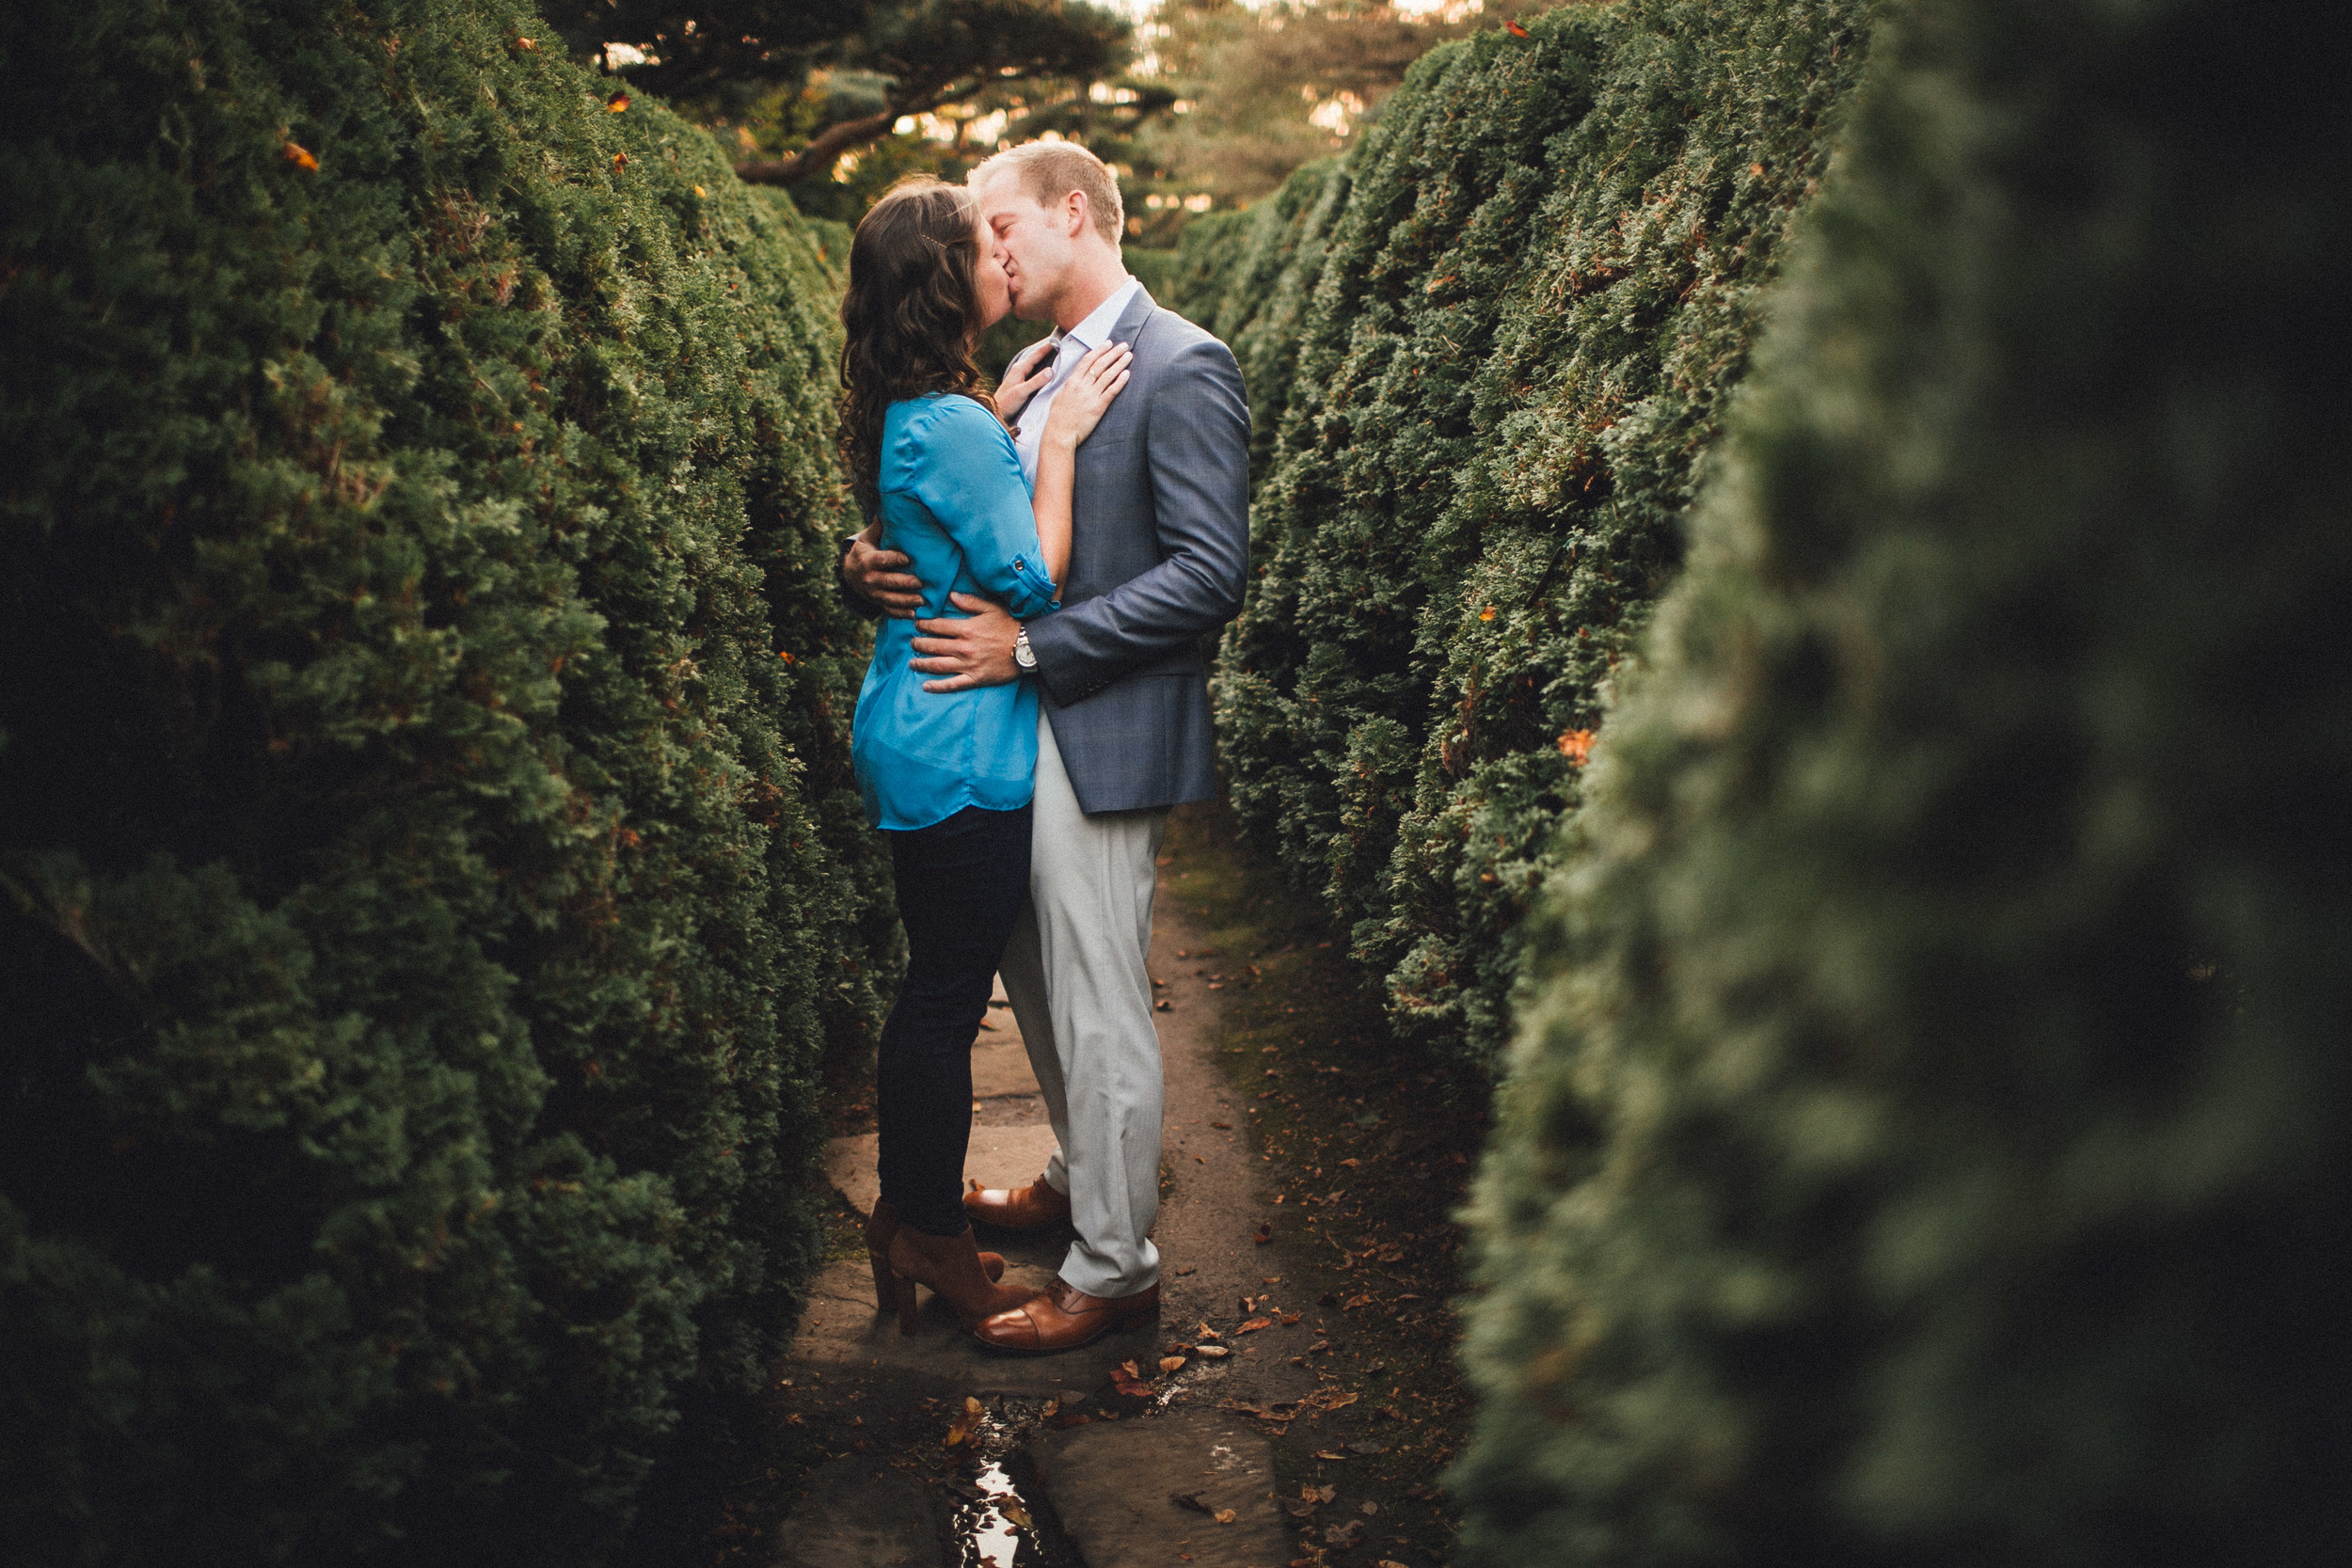 mayden photography_chicago botanical gardens engagement photo-4.jpg